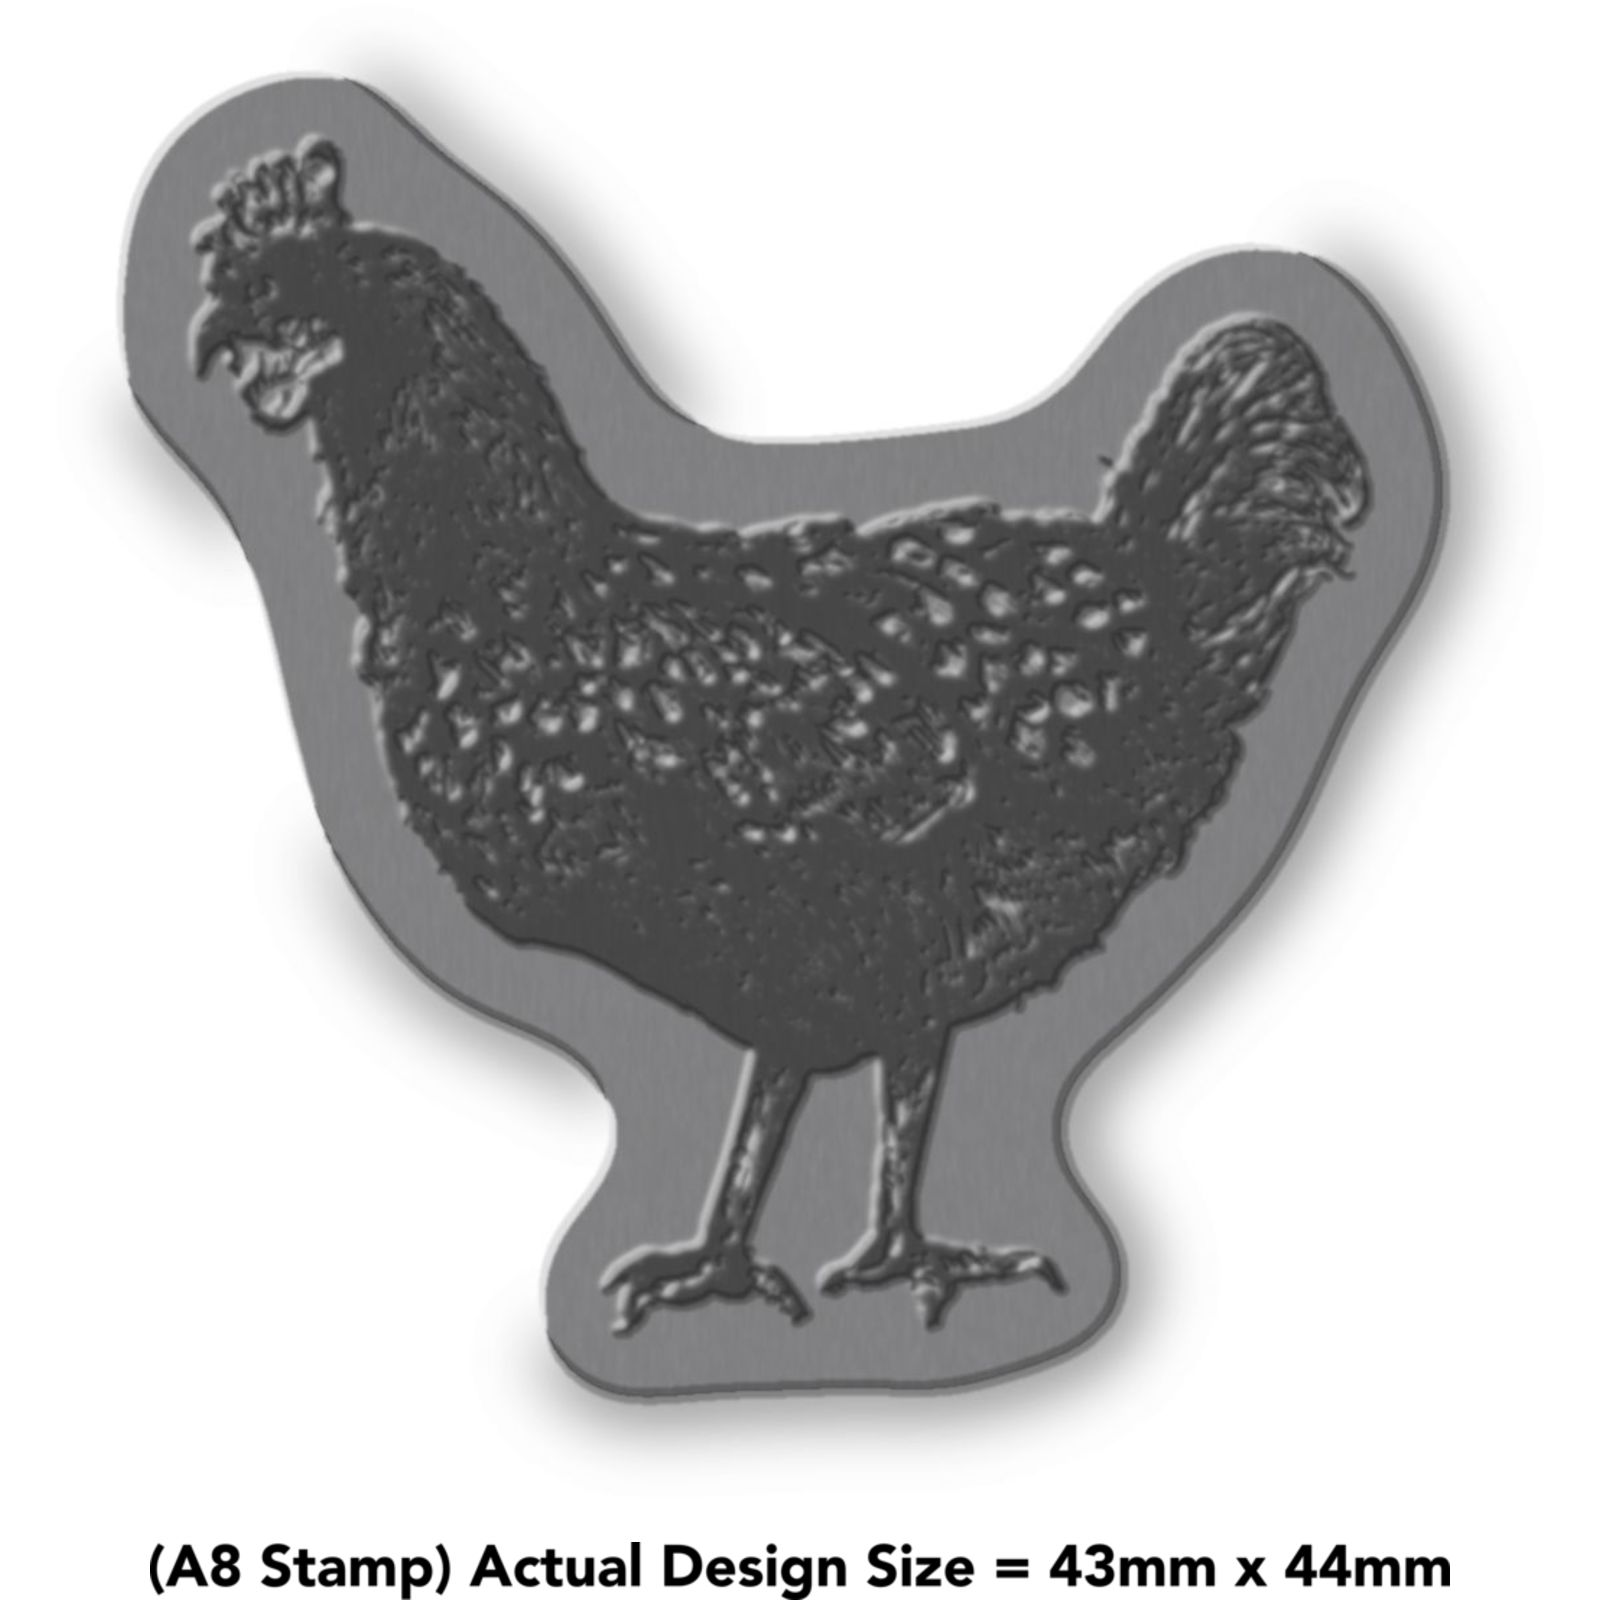 A8 /'Standing Rat/' Unmounted Rubber Stamp RS00030078